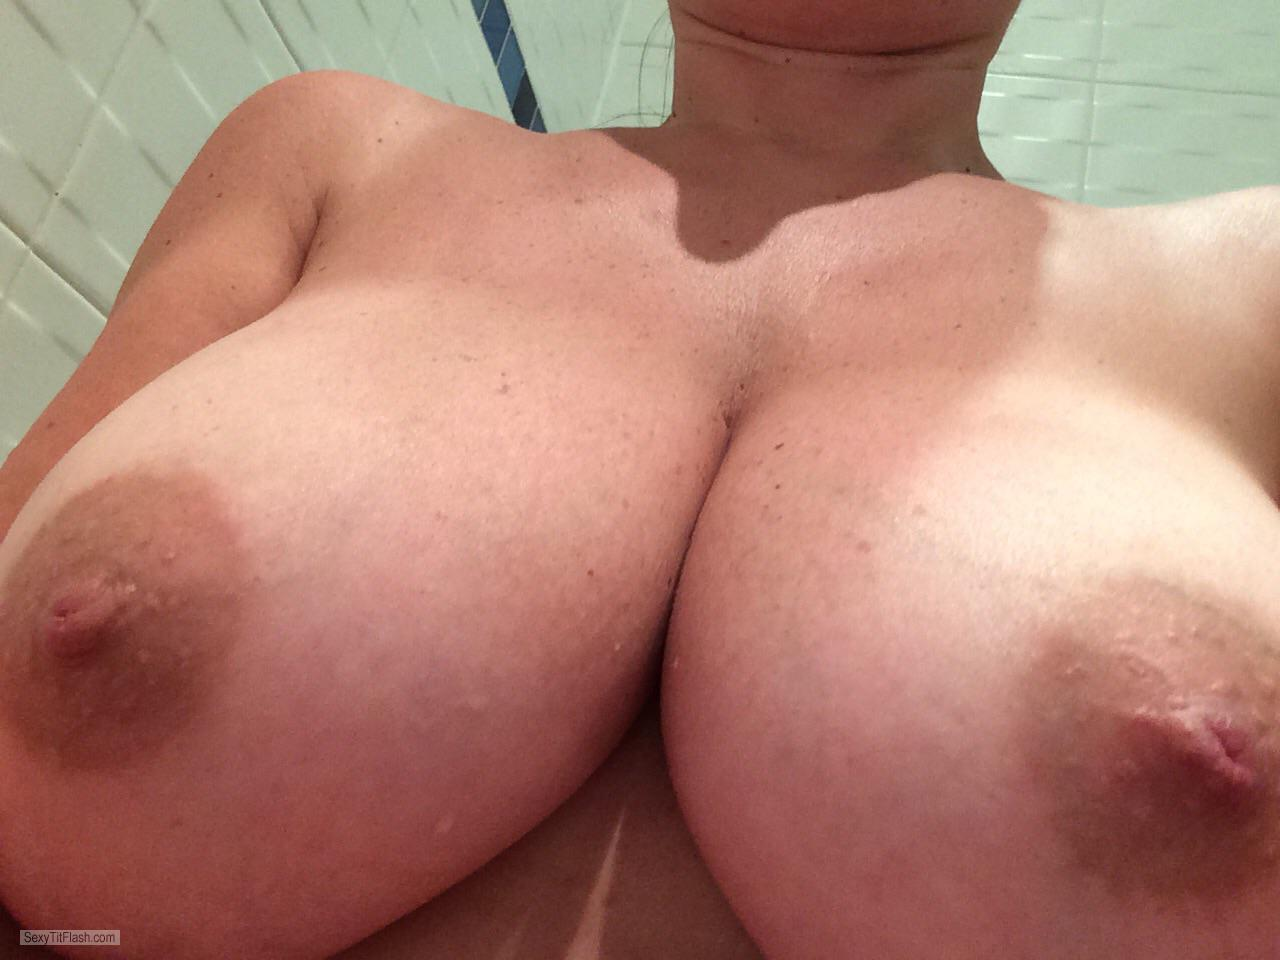 Tit Flash: My Very Big Tits (Selfie) - Topless GGDent from United Kingdom